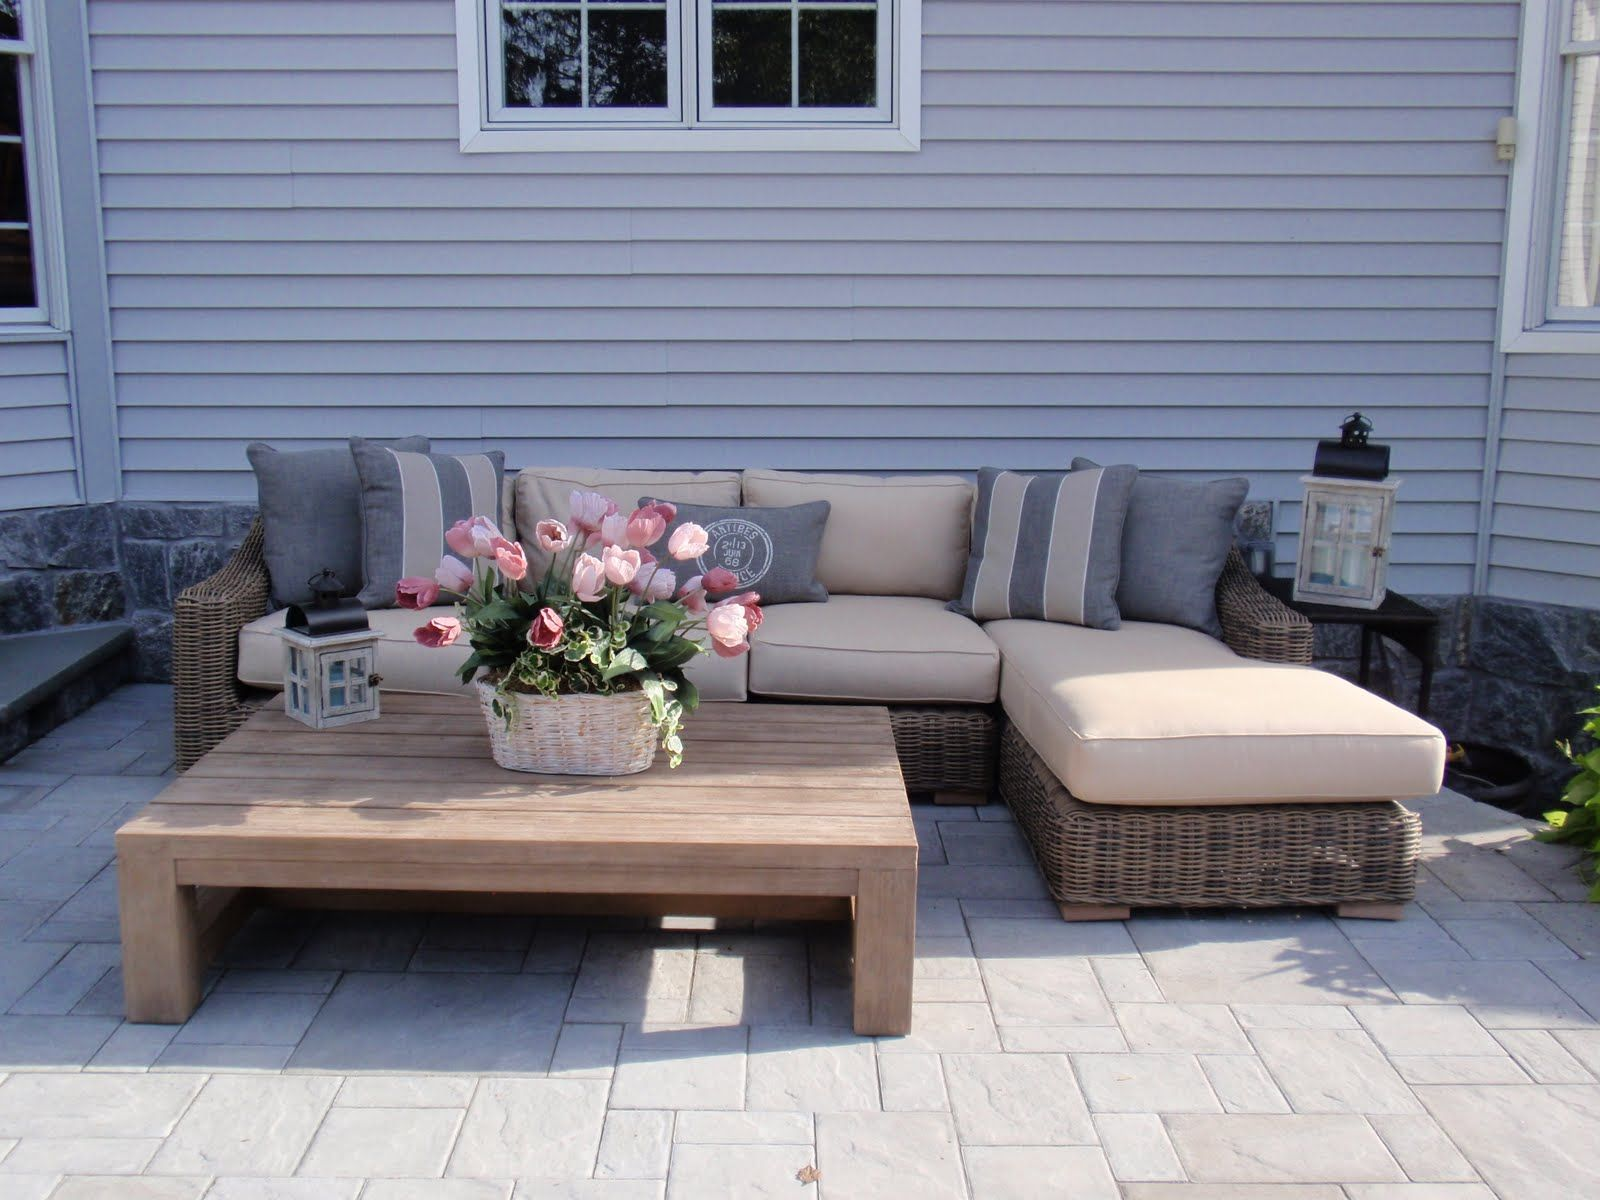 Outdoor Living Room. Space Complete With